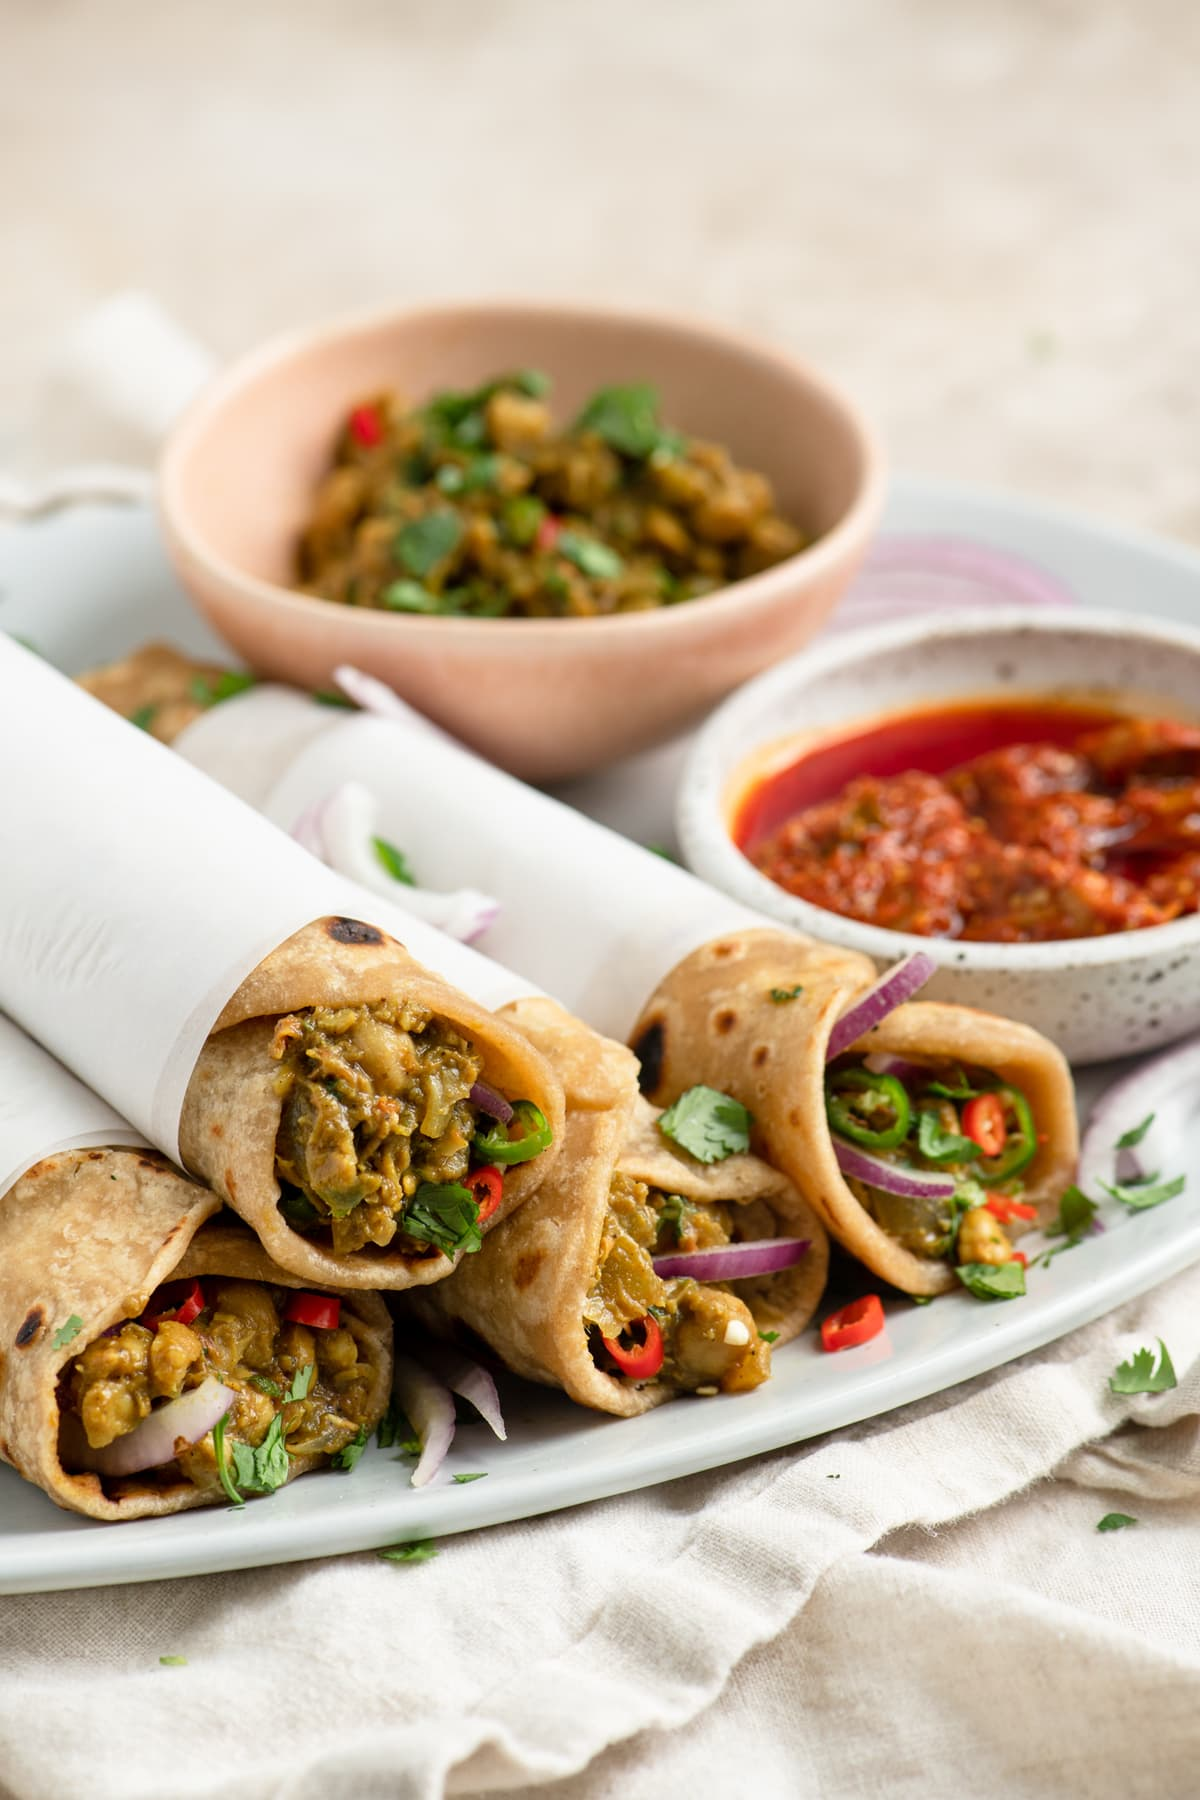 chana kathi tolls on serving plate next to mint chutney and aachar, or indian pickles